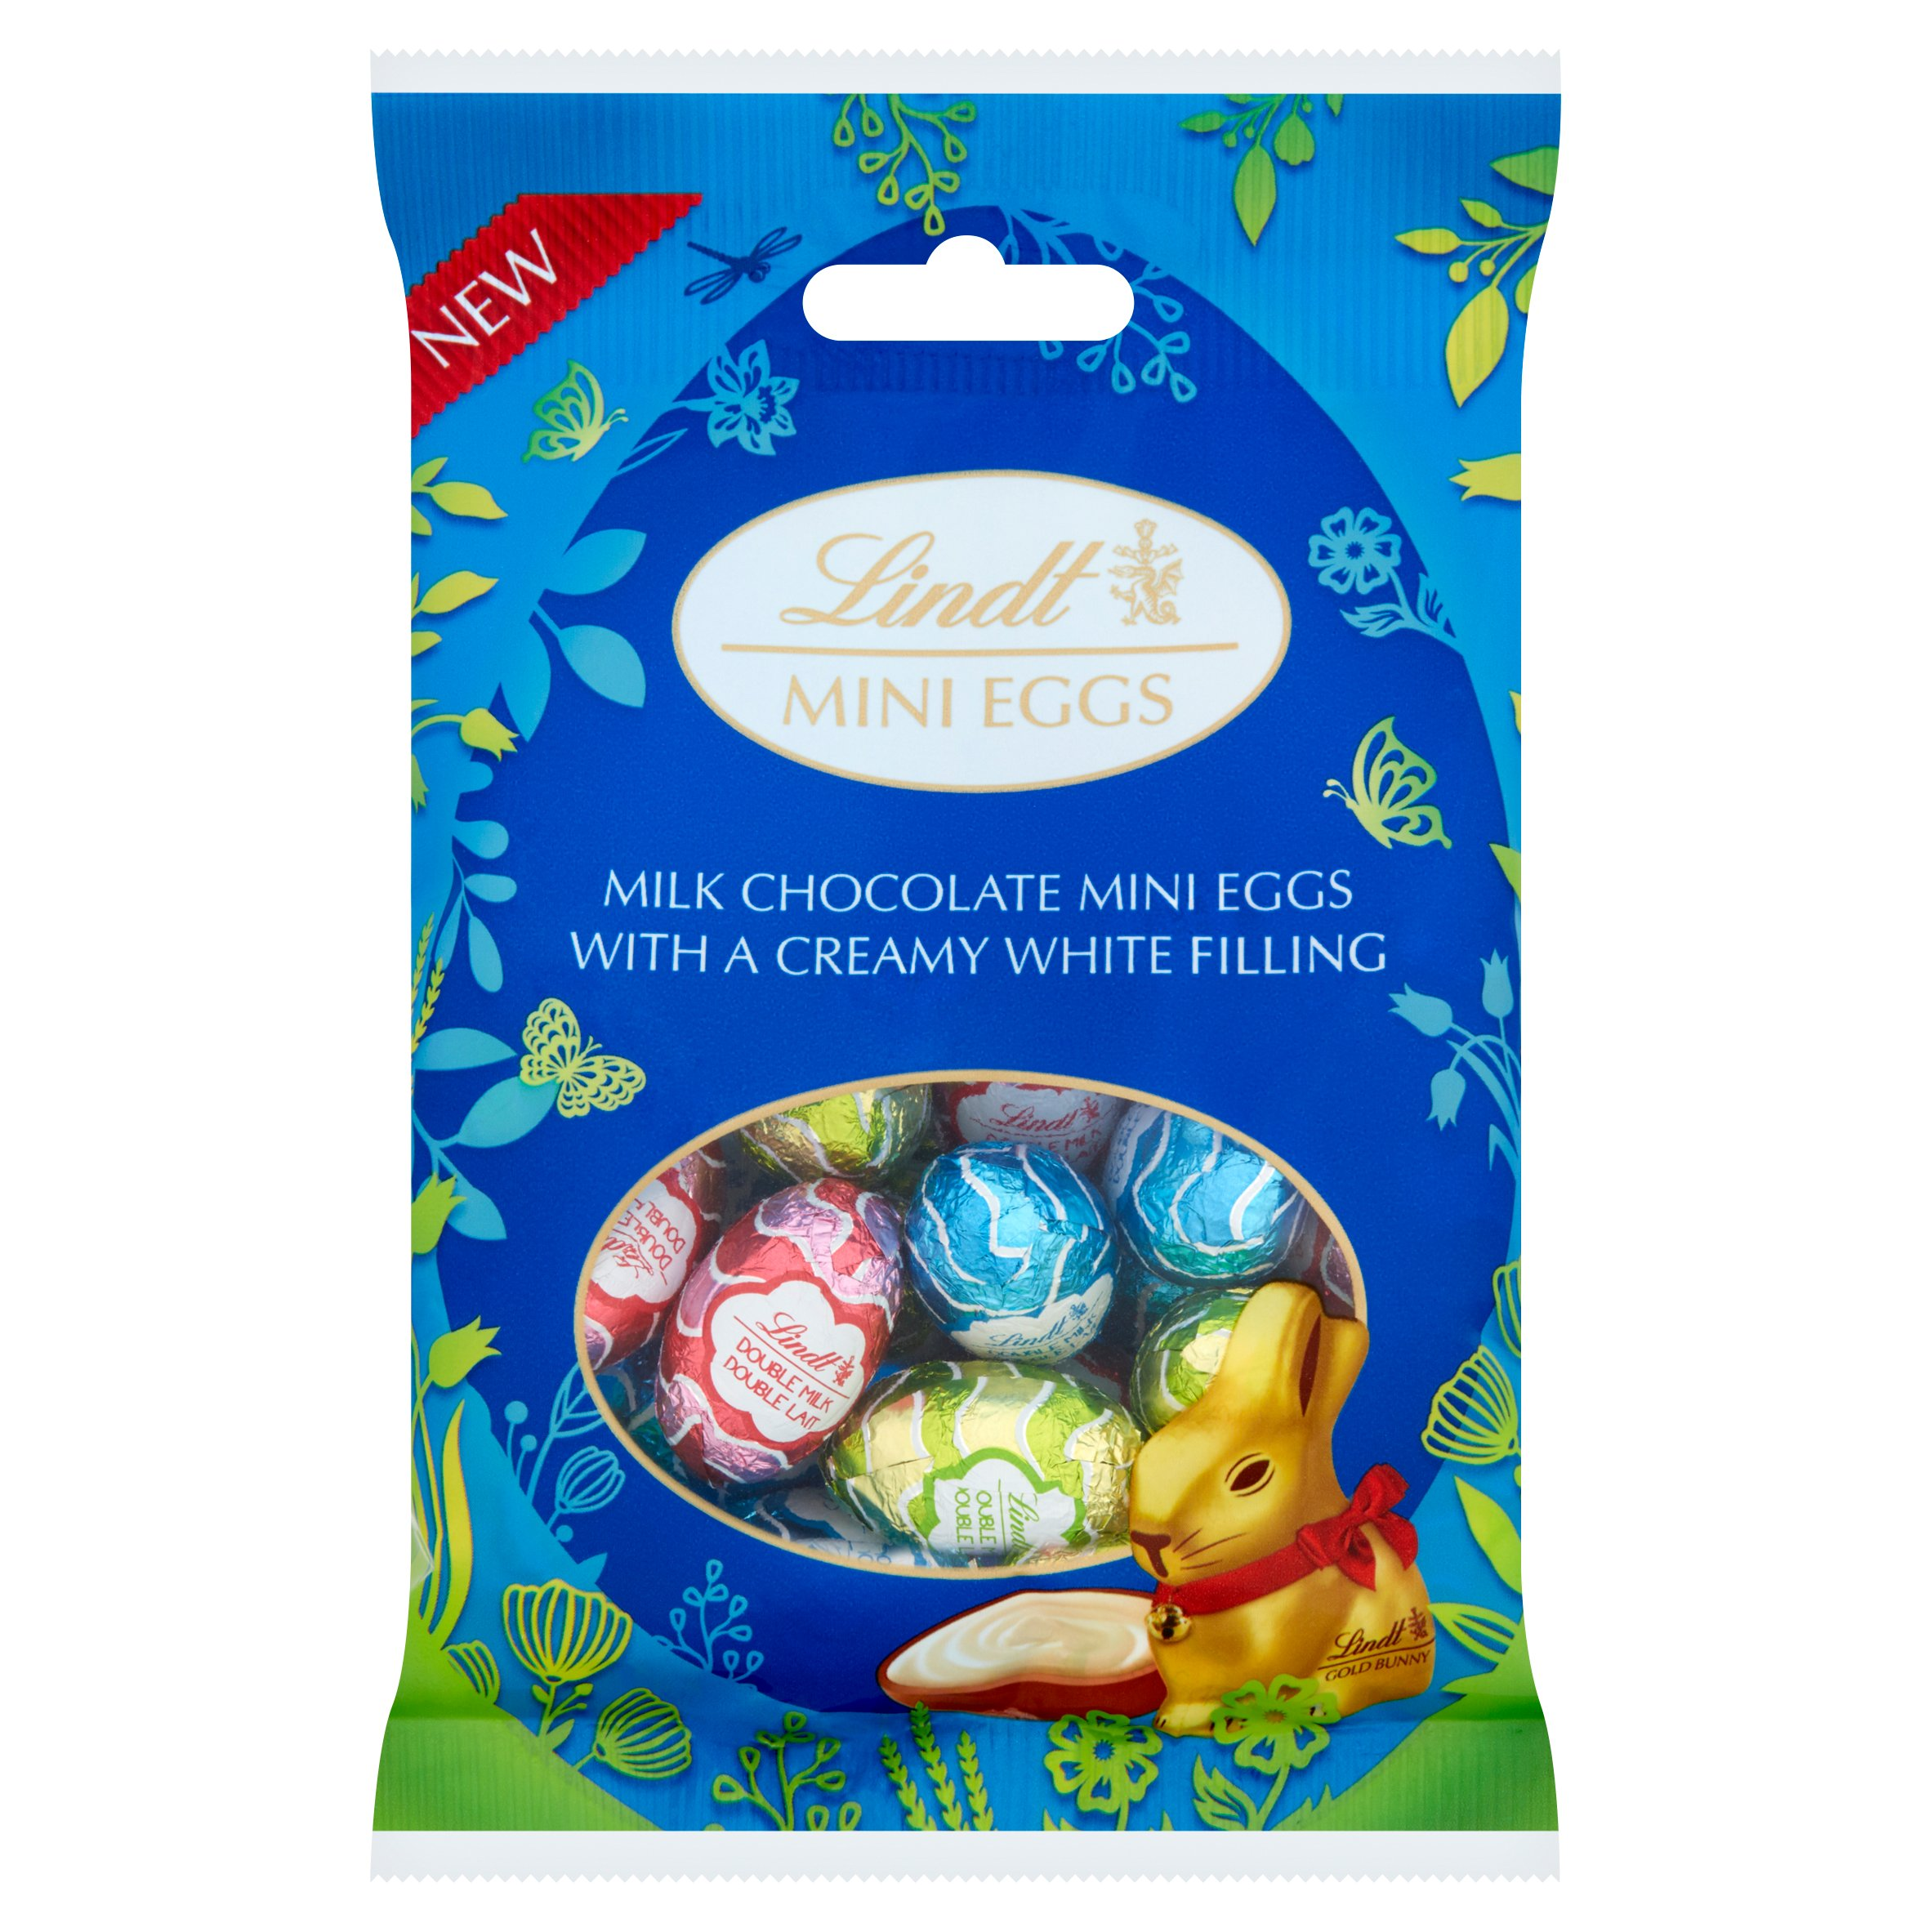 image 1 of Lindt Mini Eggs Milk Chocolate With Creamy Filling 80G